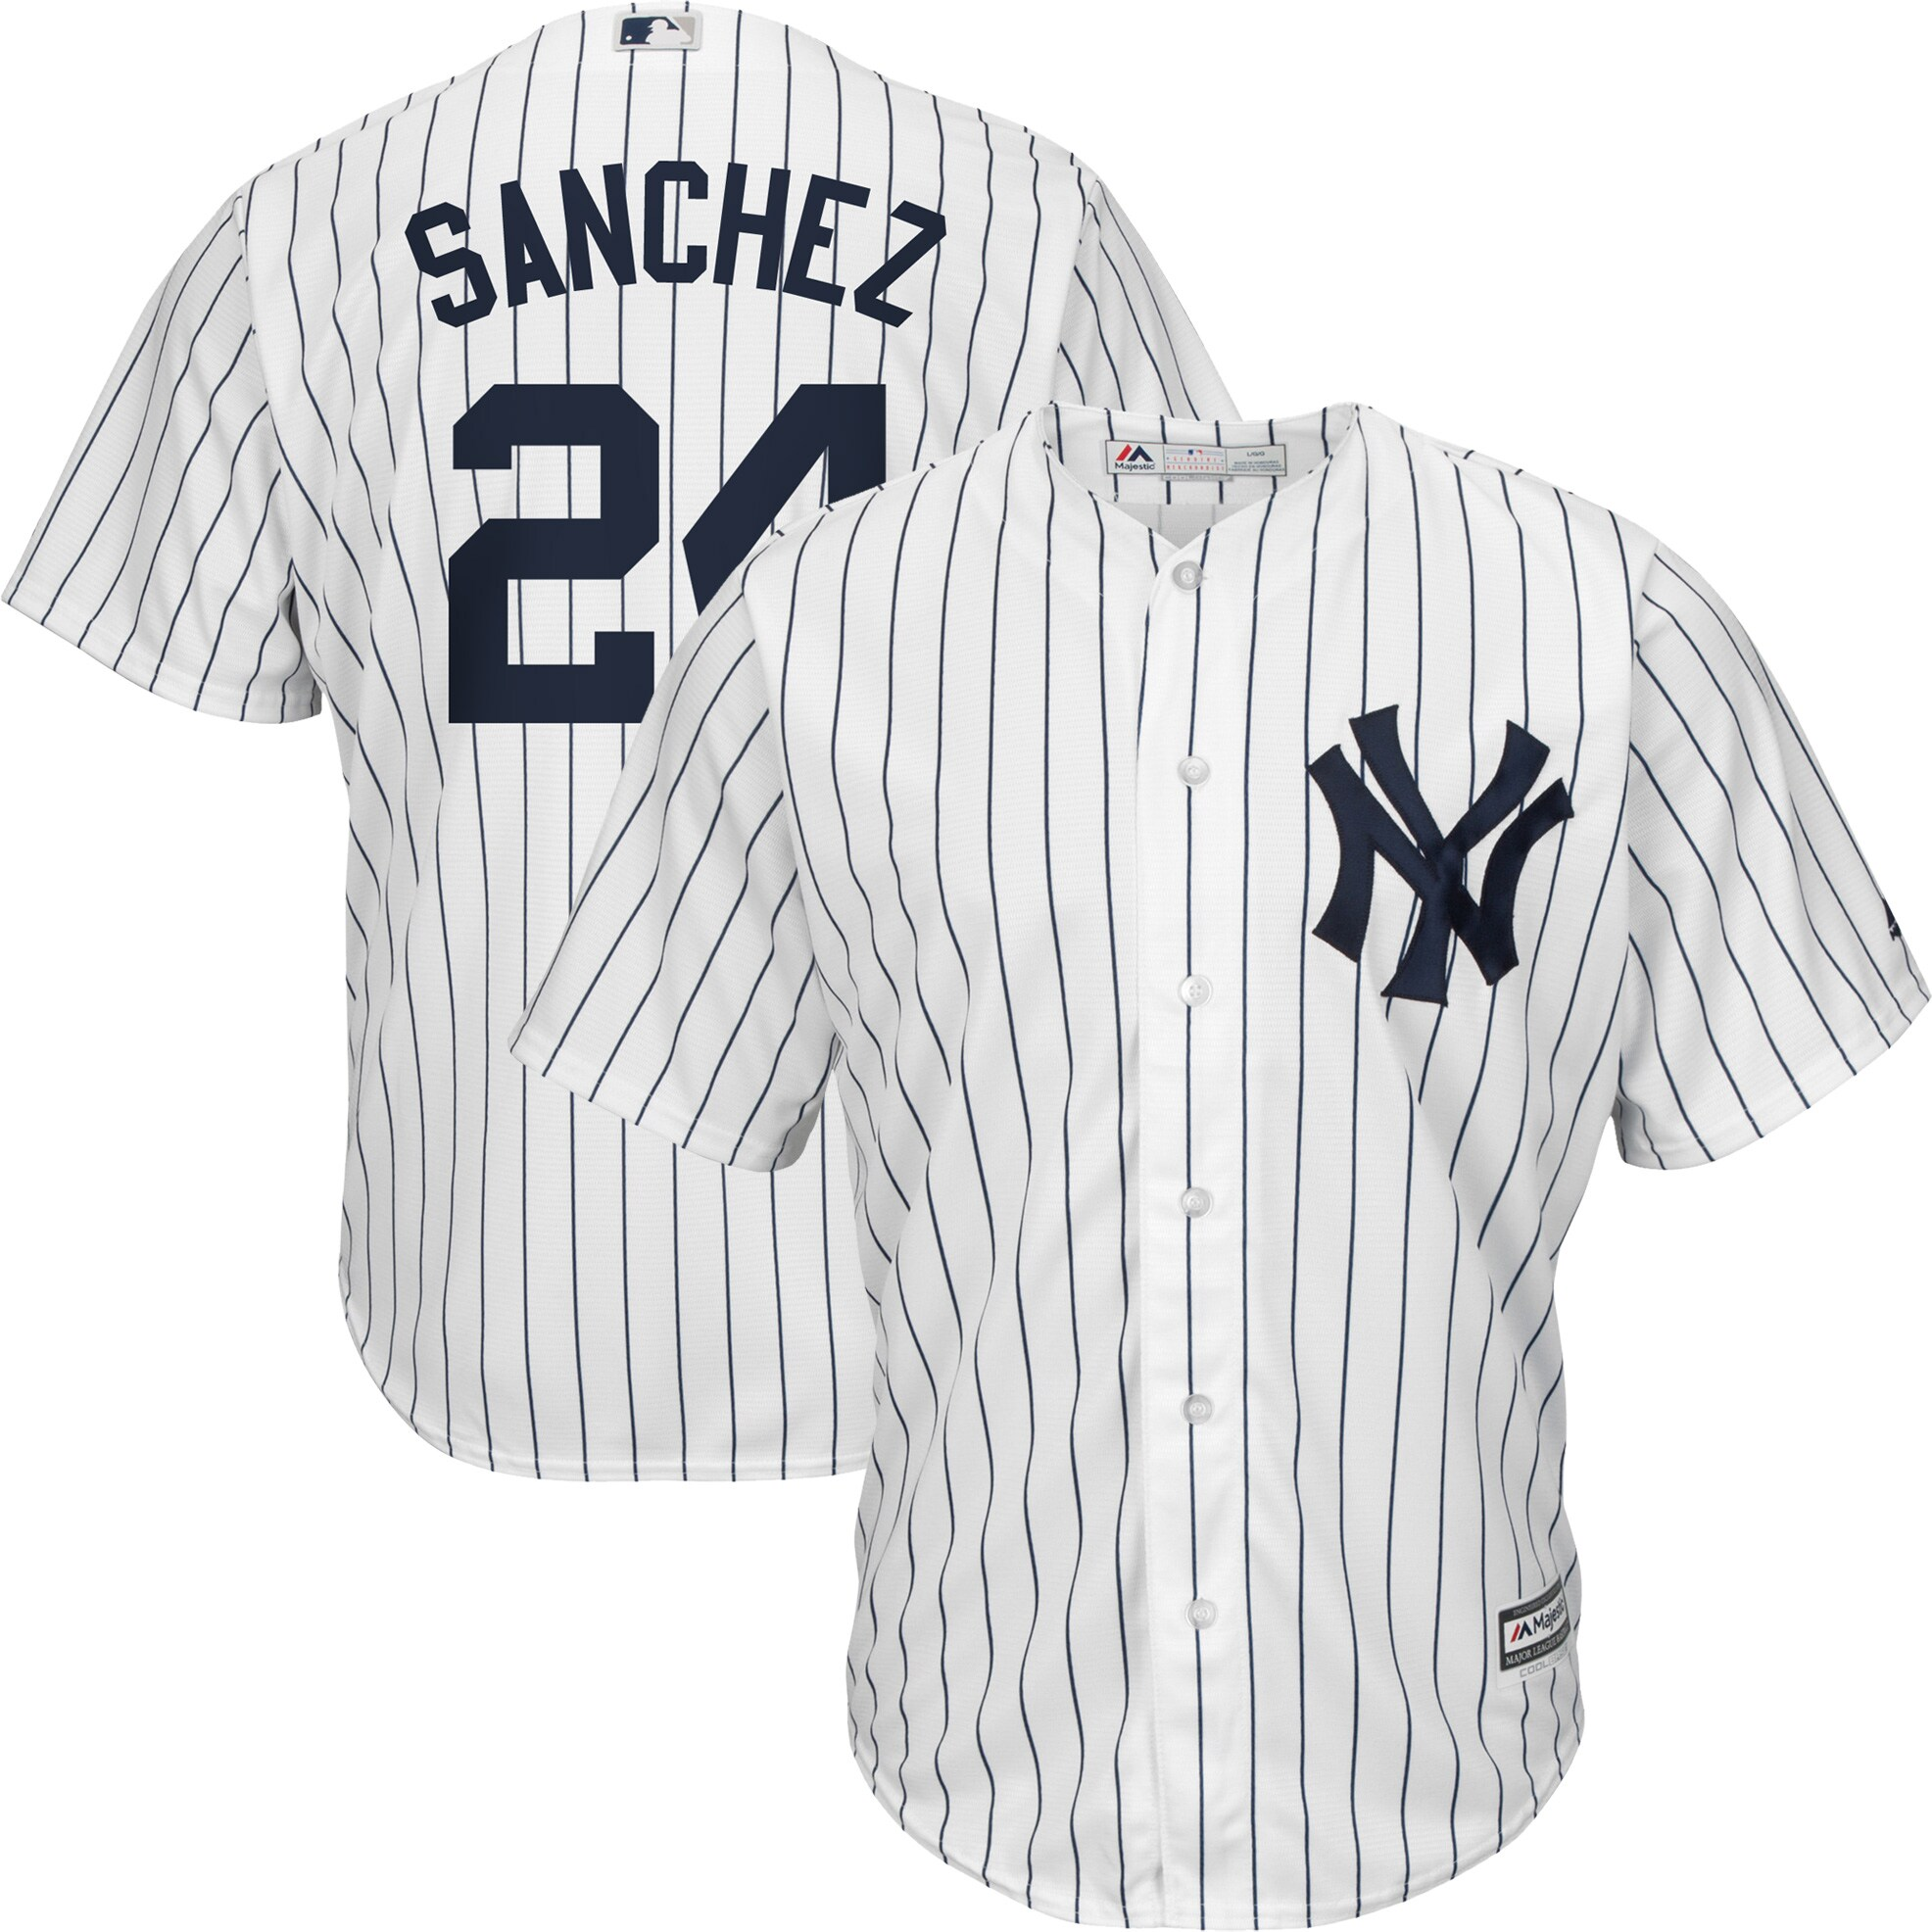 Gary Sanchez New York Yankees Majestic Big & Tall Home Cool Base Player Jersey - White/Navy